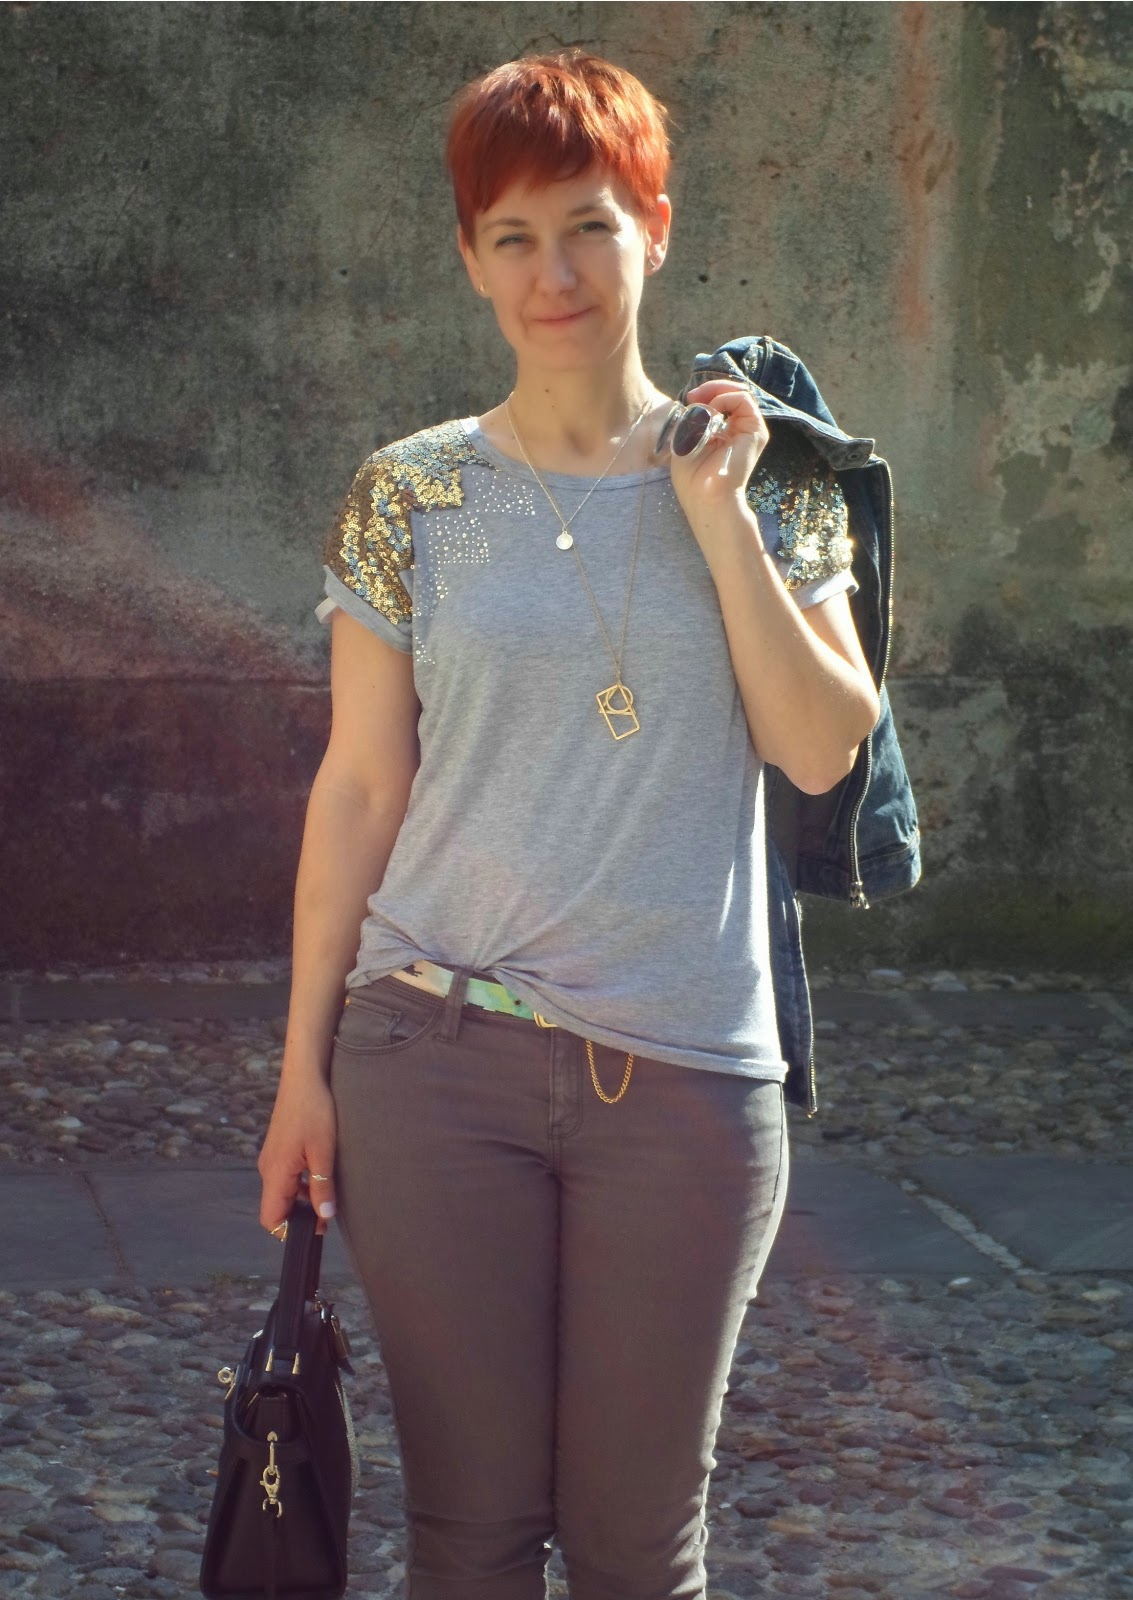 Sequin Shirt, Grey Skinnies, Black Bag, Mirror Sunglasses at Iseo, Lake Iseo | Sparkle and Mirrors - Sequins for Sunday, Funky Jungle, fashion & personal style blog